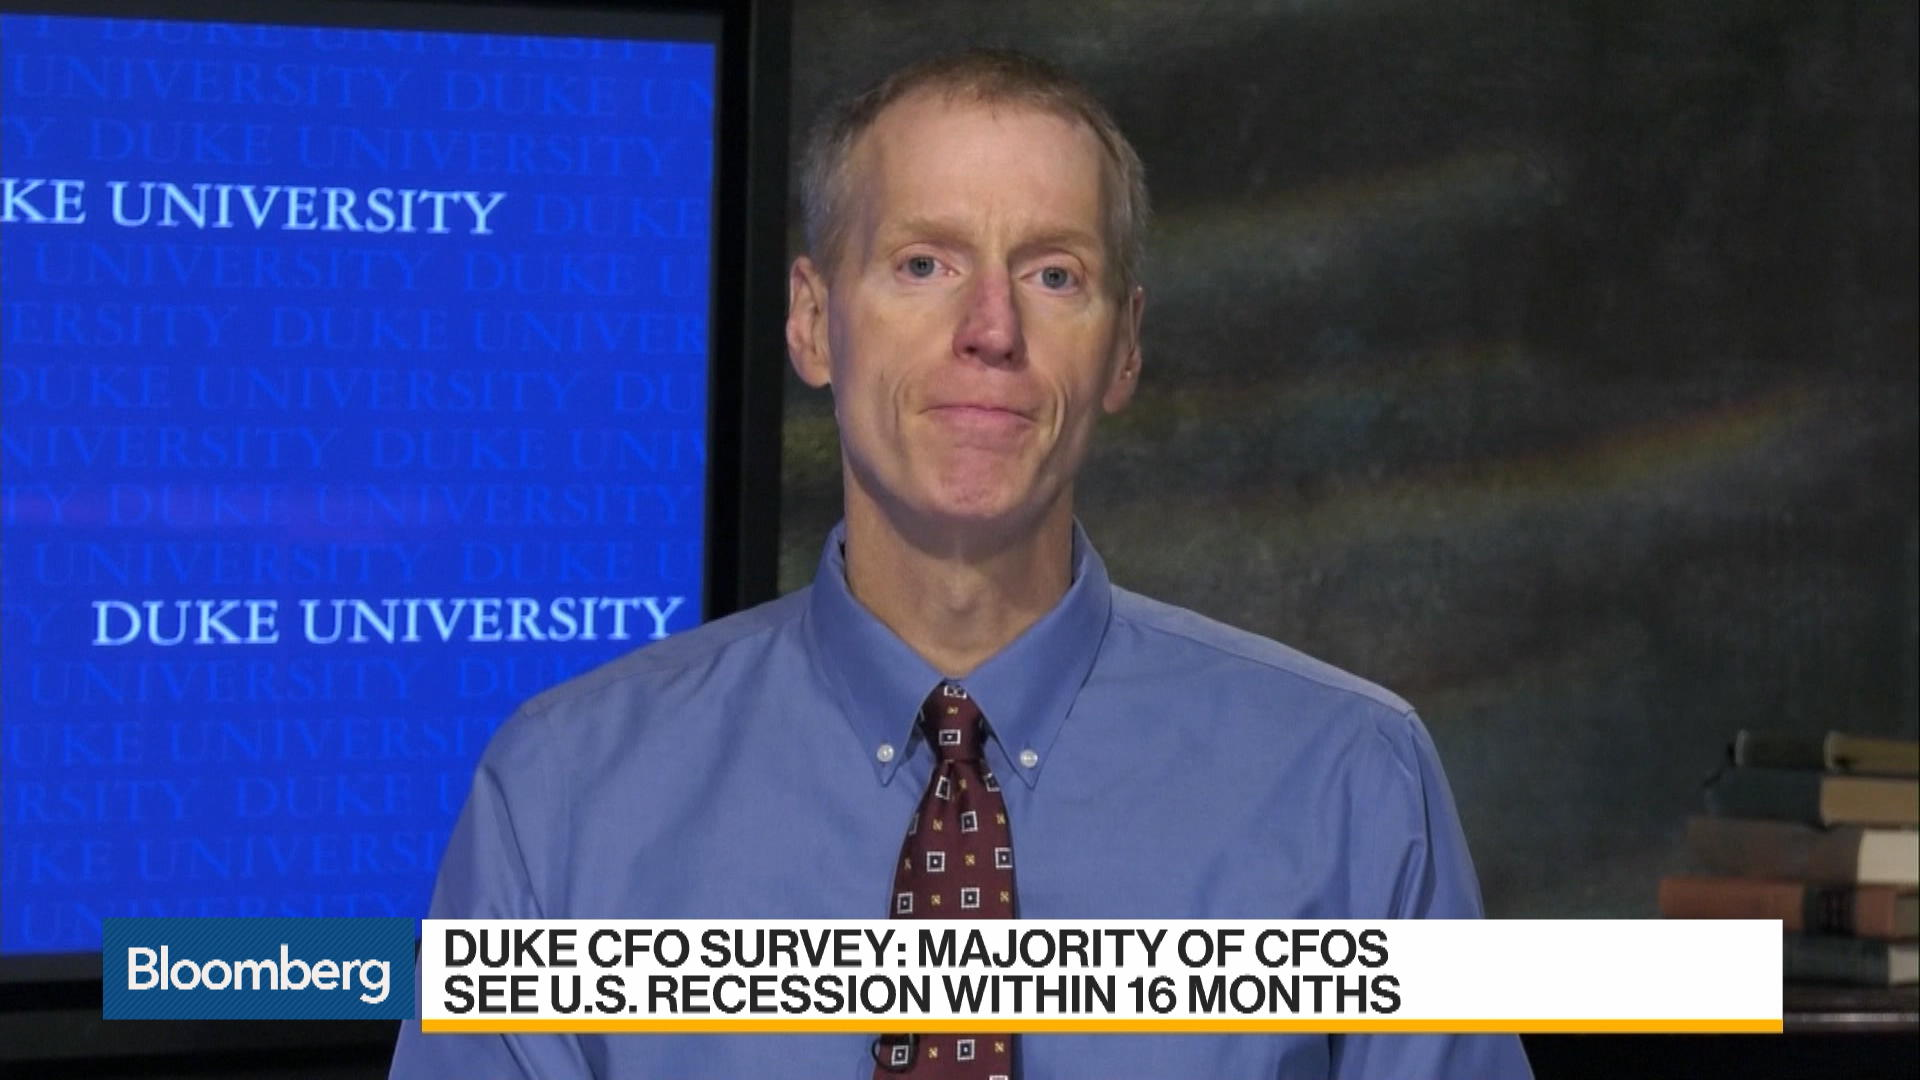 U.S. CFO's Expect a Recession by Late 2020 in Duke University Survey